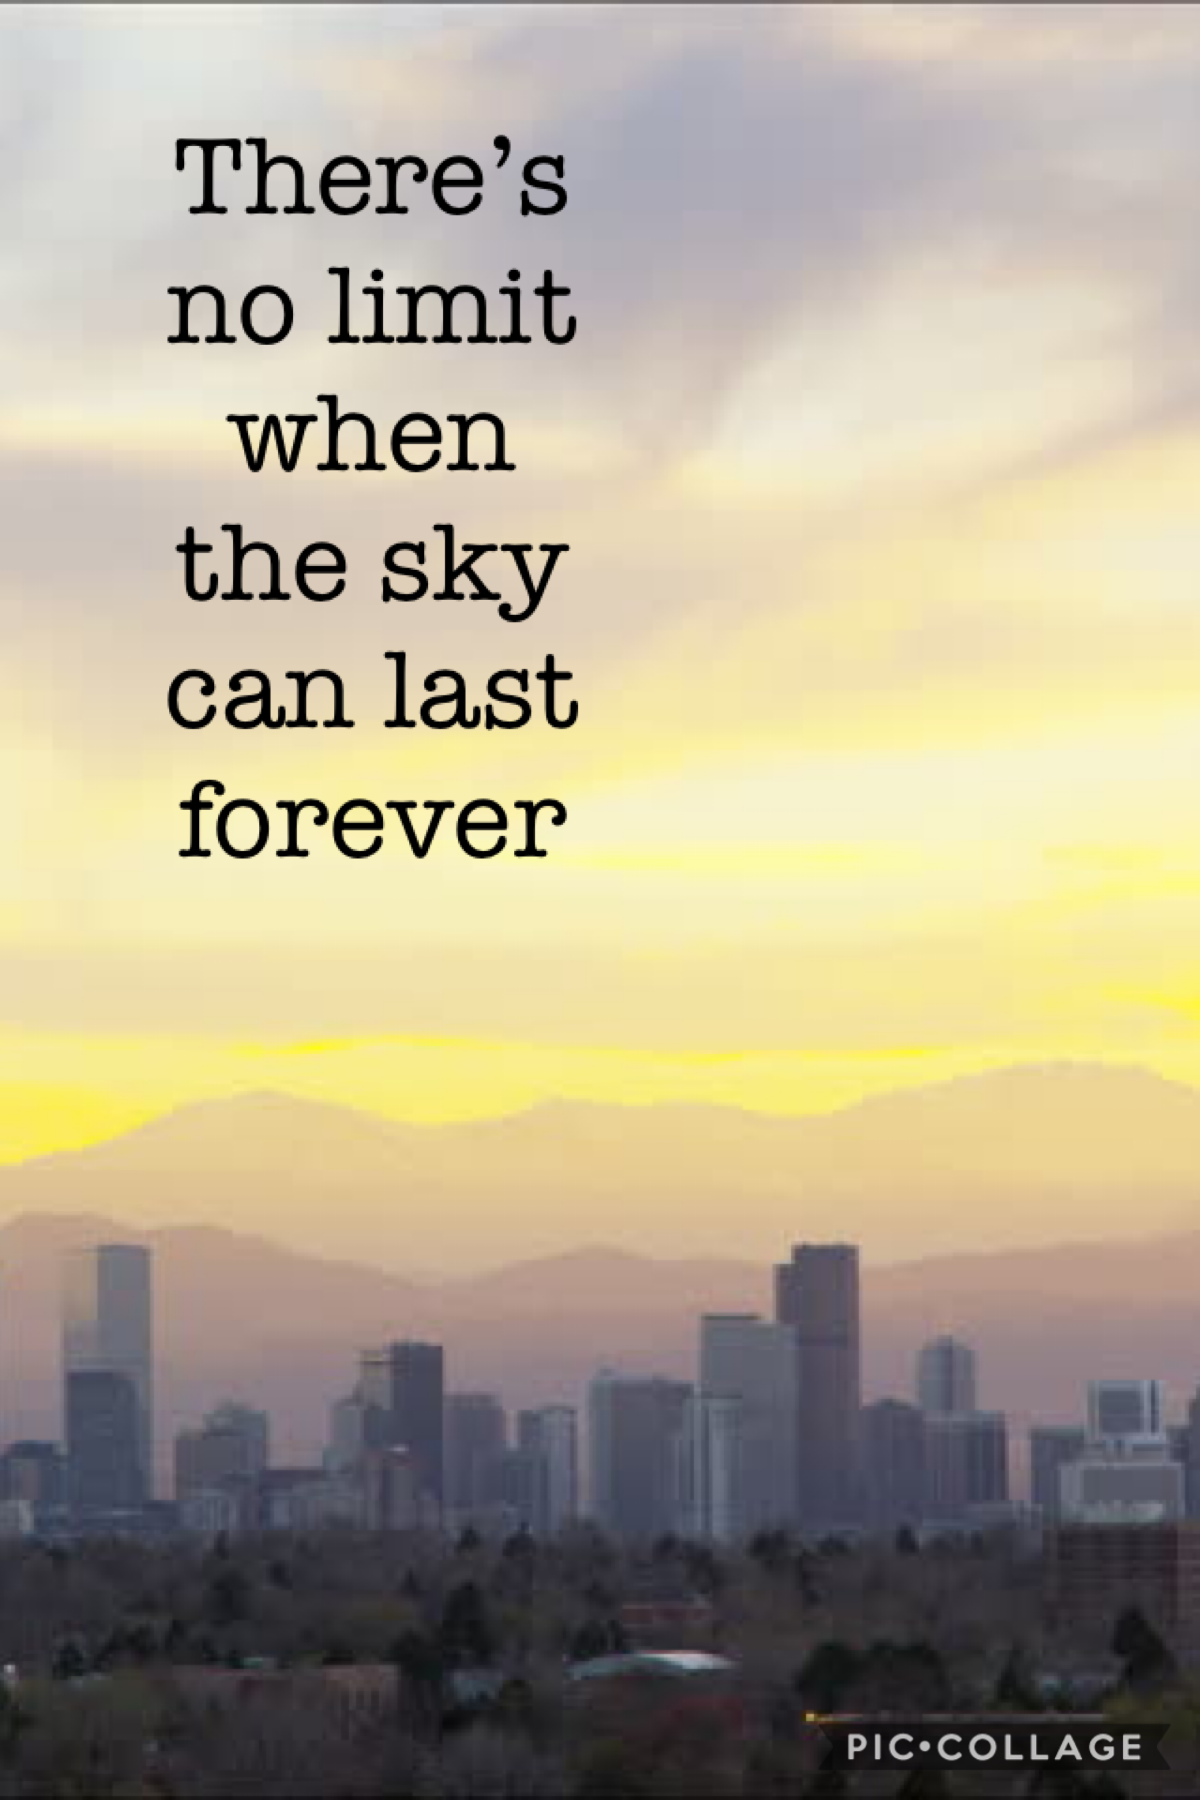 If the sky's the limit there is no limit because the sky may go on forever